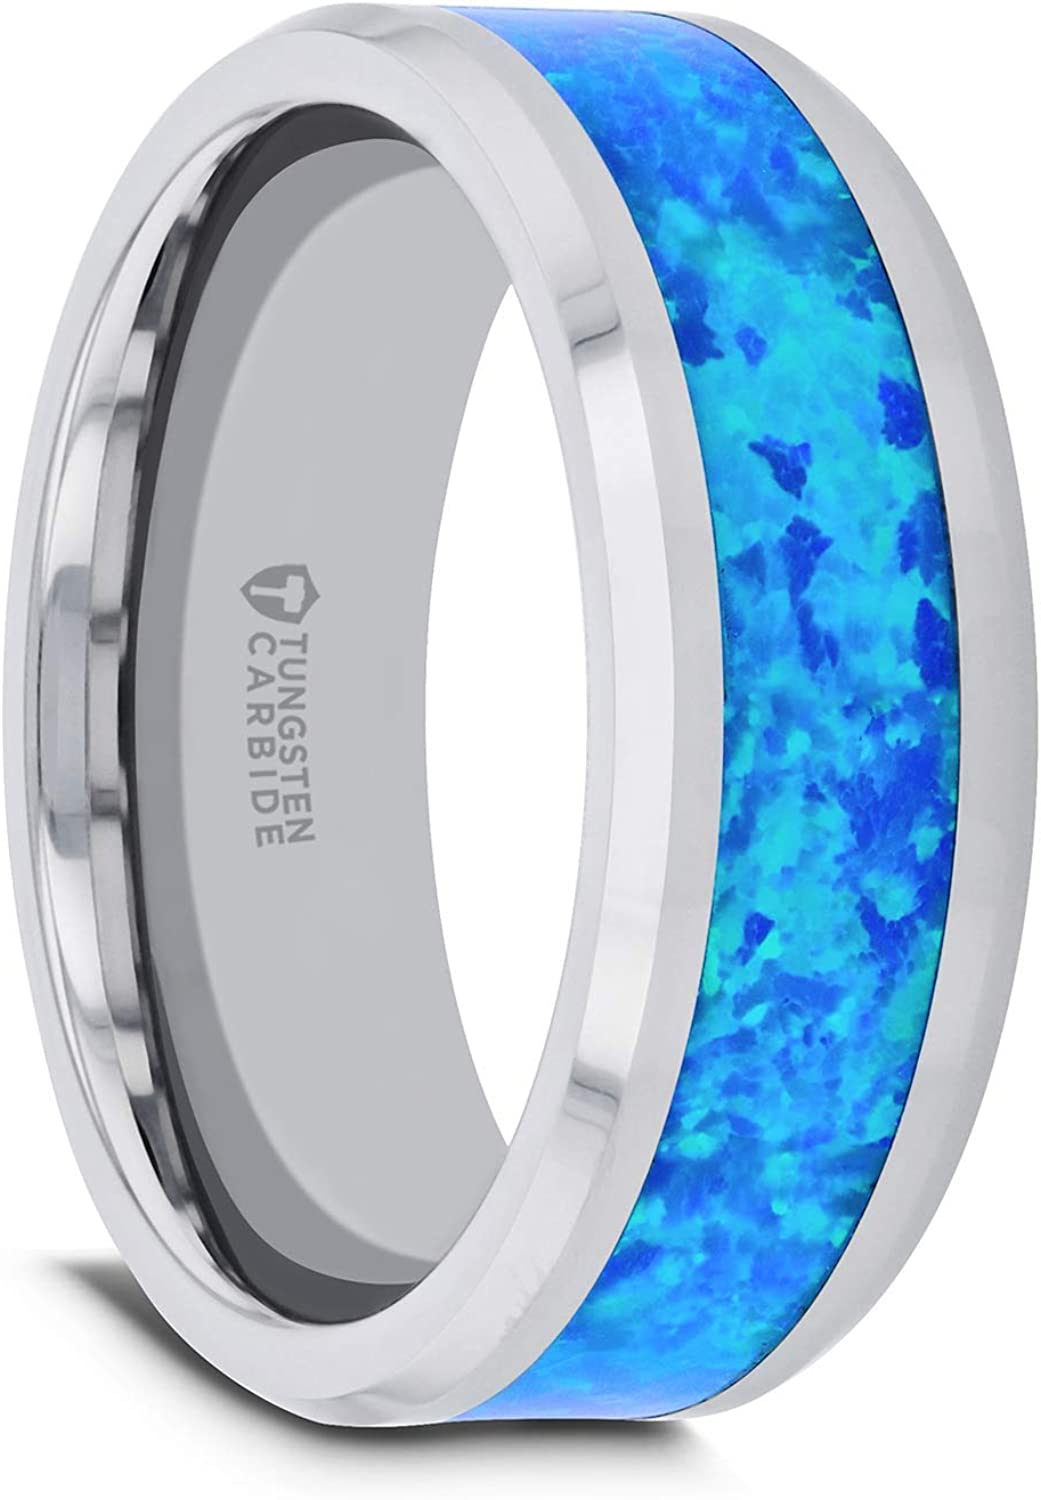 Thorsten Quasar | Tungsten Rings for Men | Tungsten | Comfort Fit | Custom Engraving | Wedding Ring Band with Blue Green Opal Inlay - 8mm